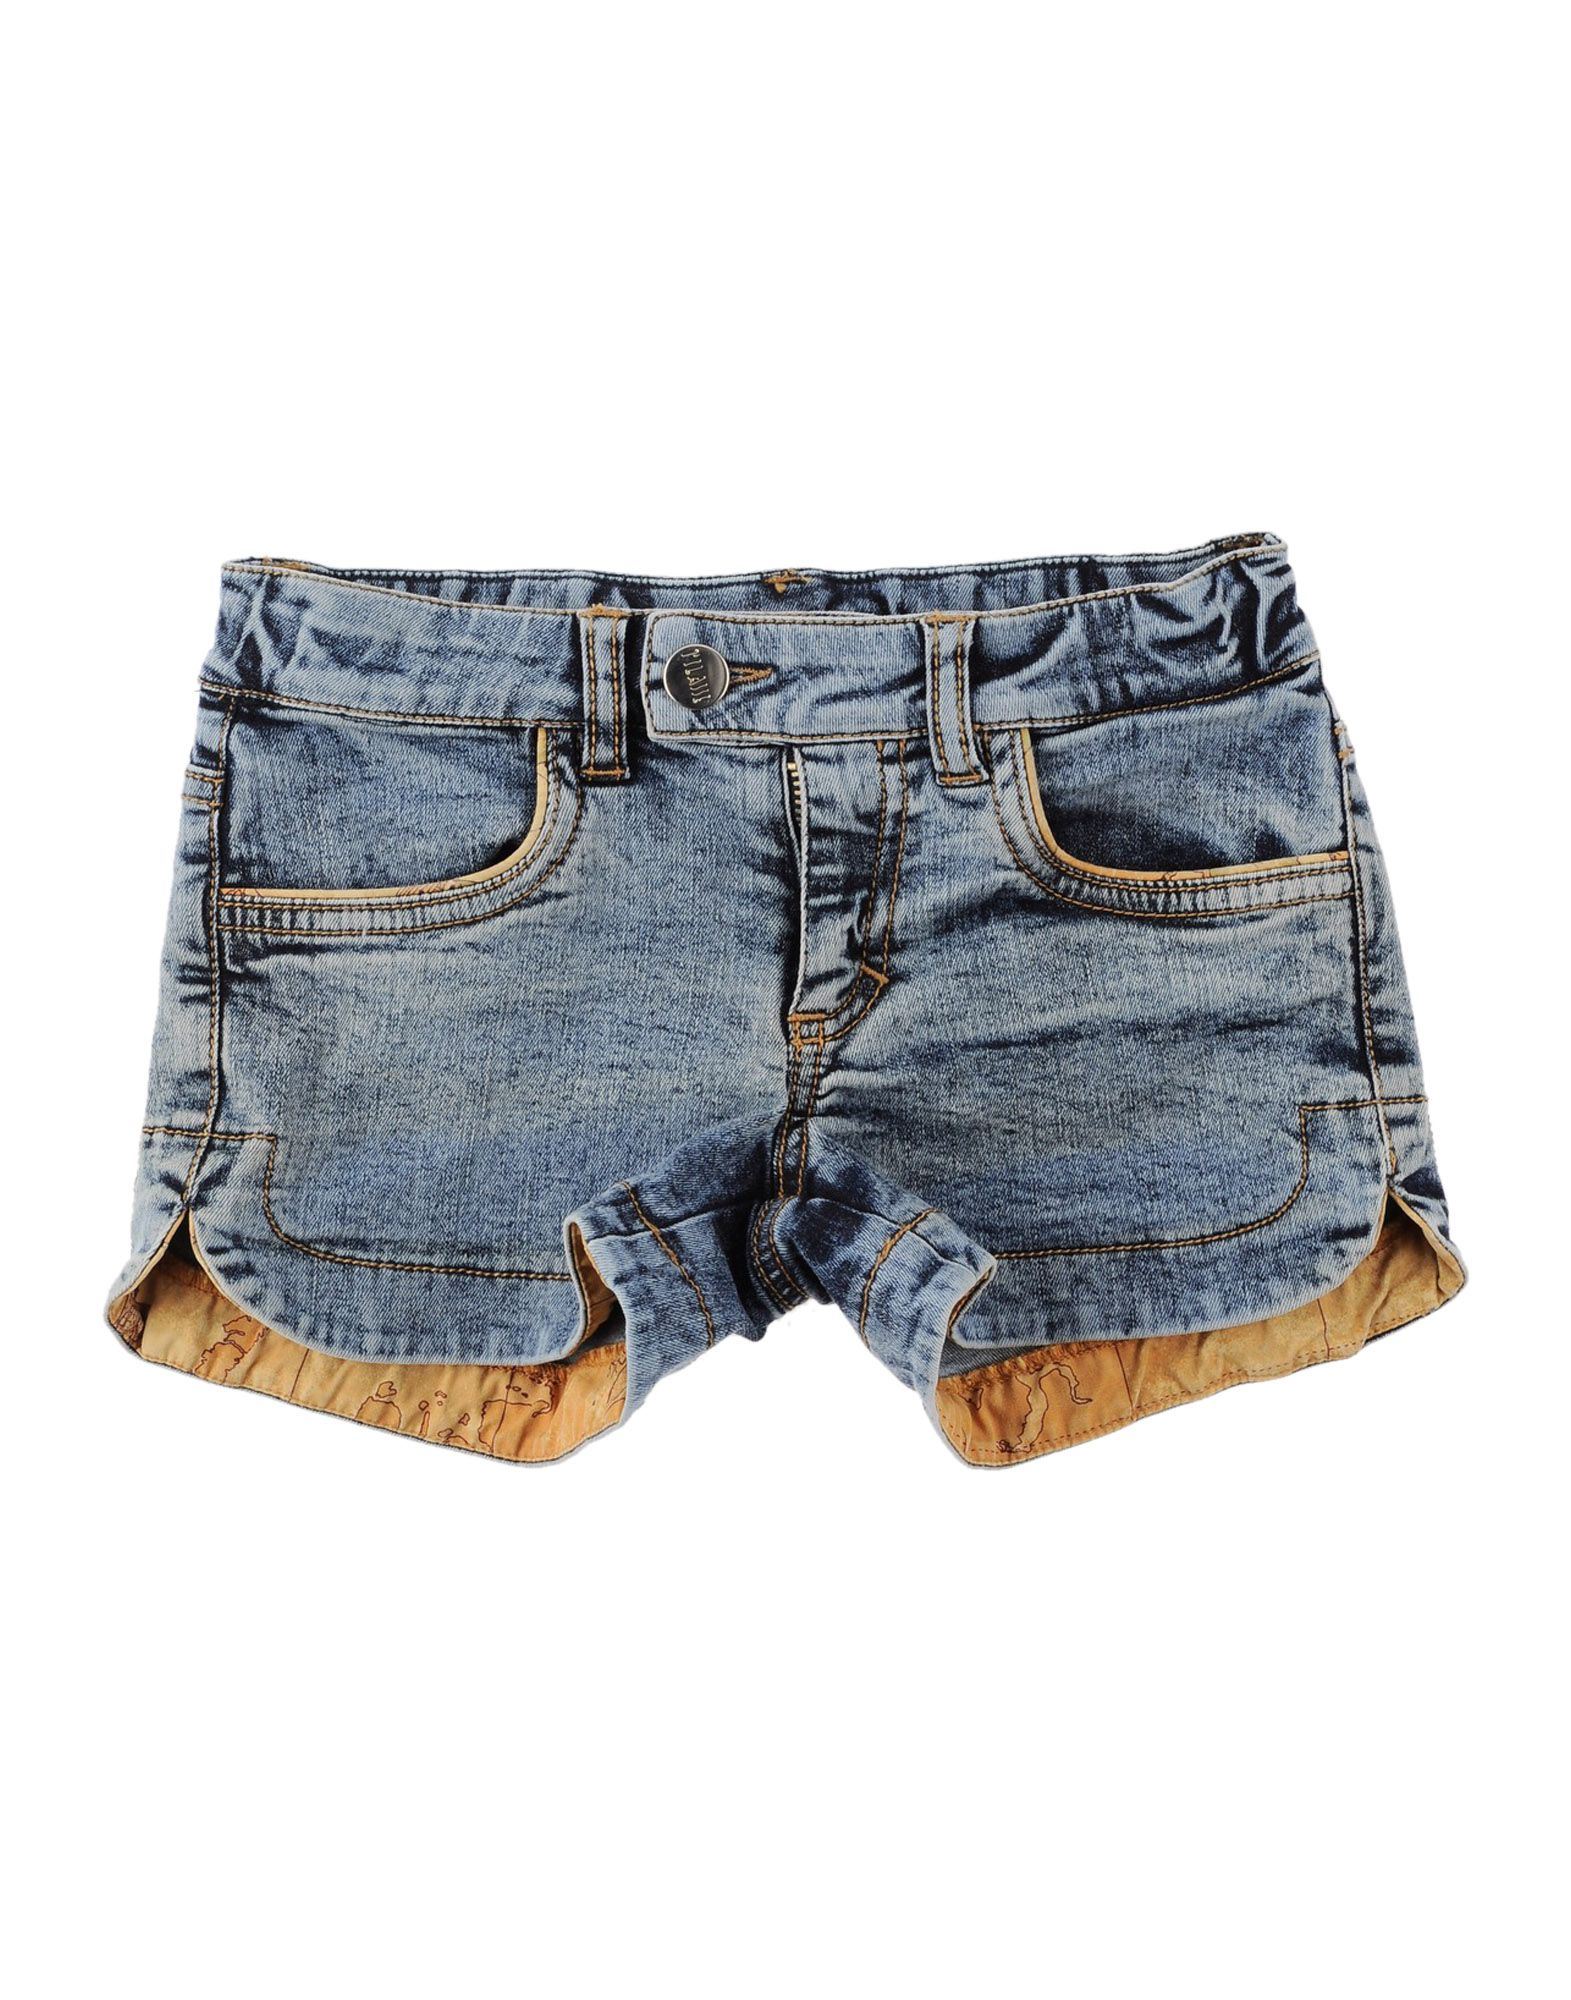 DONNAVVENTURA by ALVIERO MARTINI 1a CLASSE Denim shorts